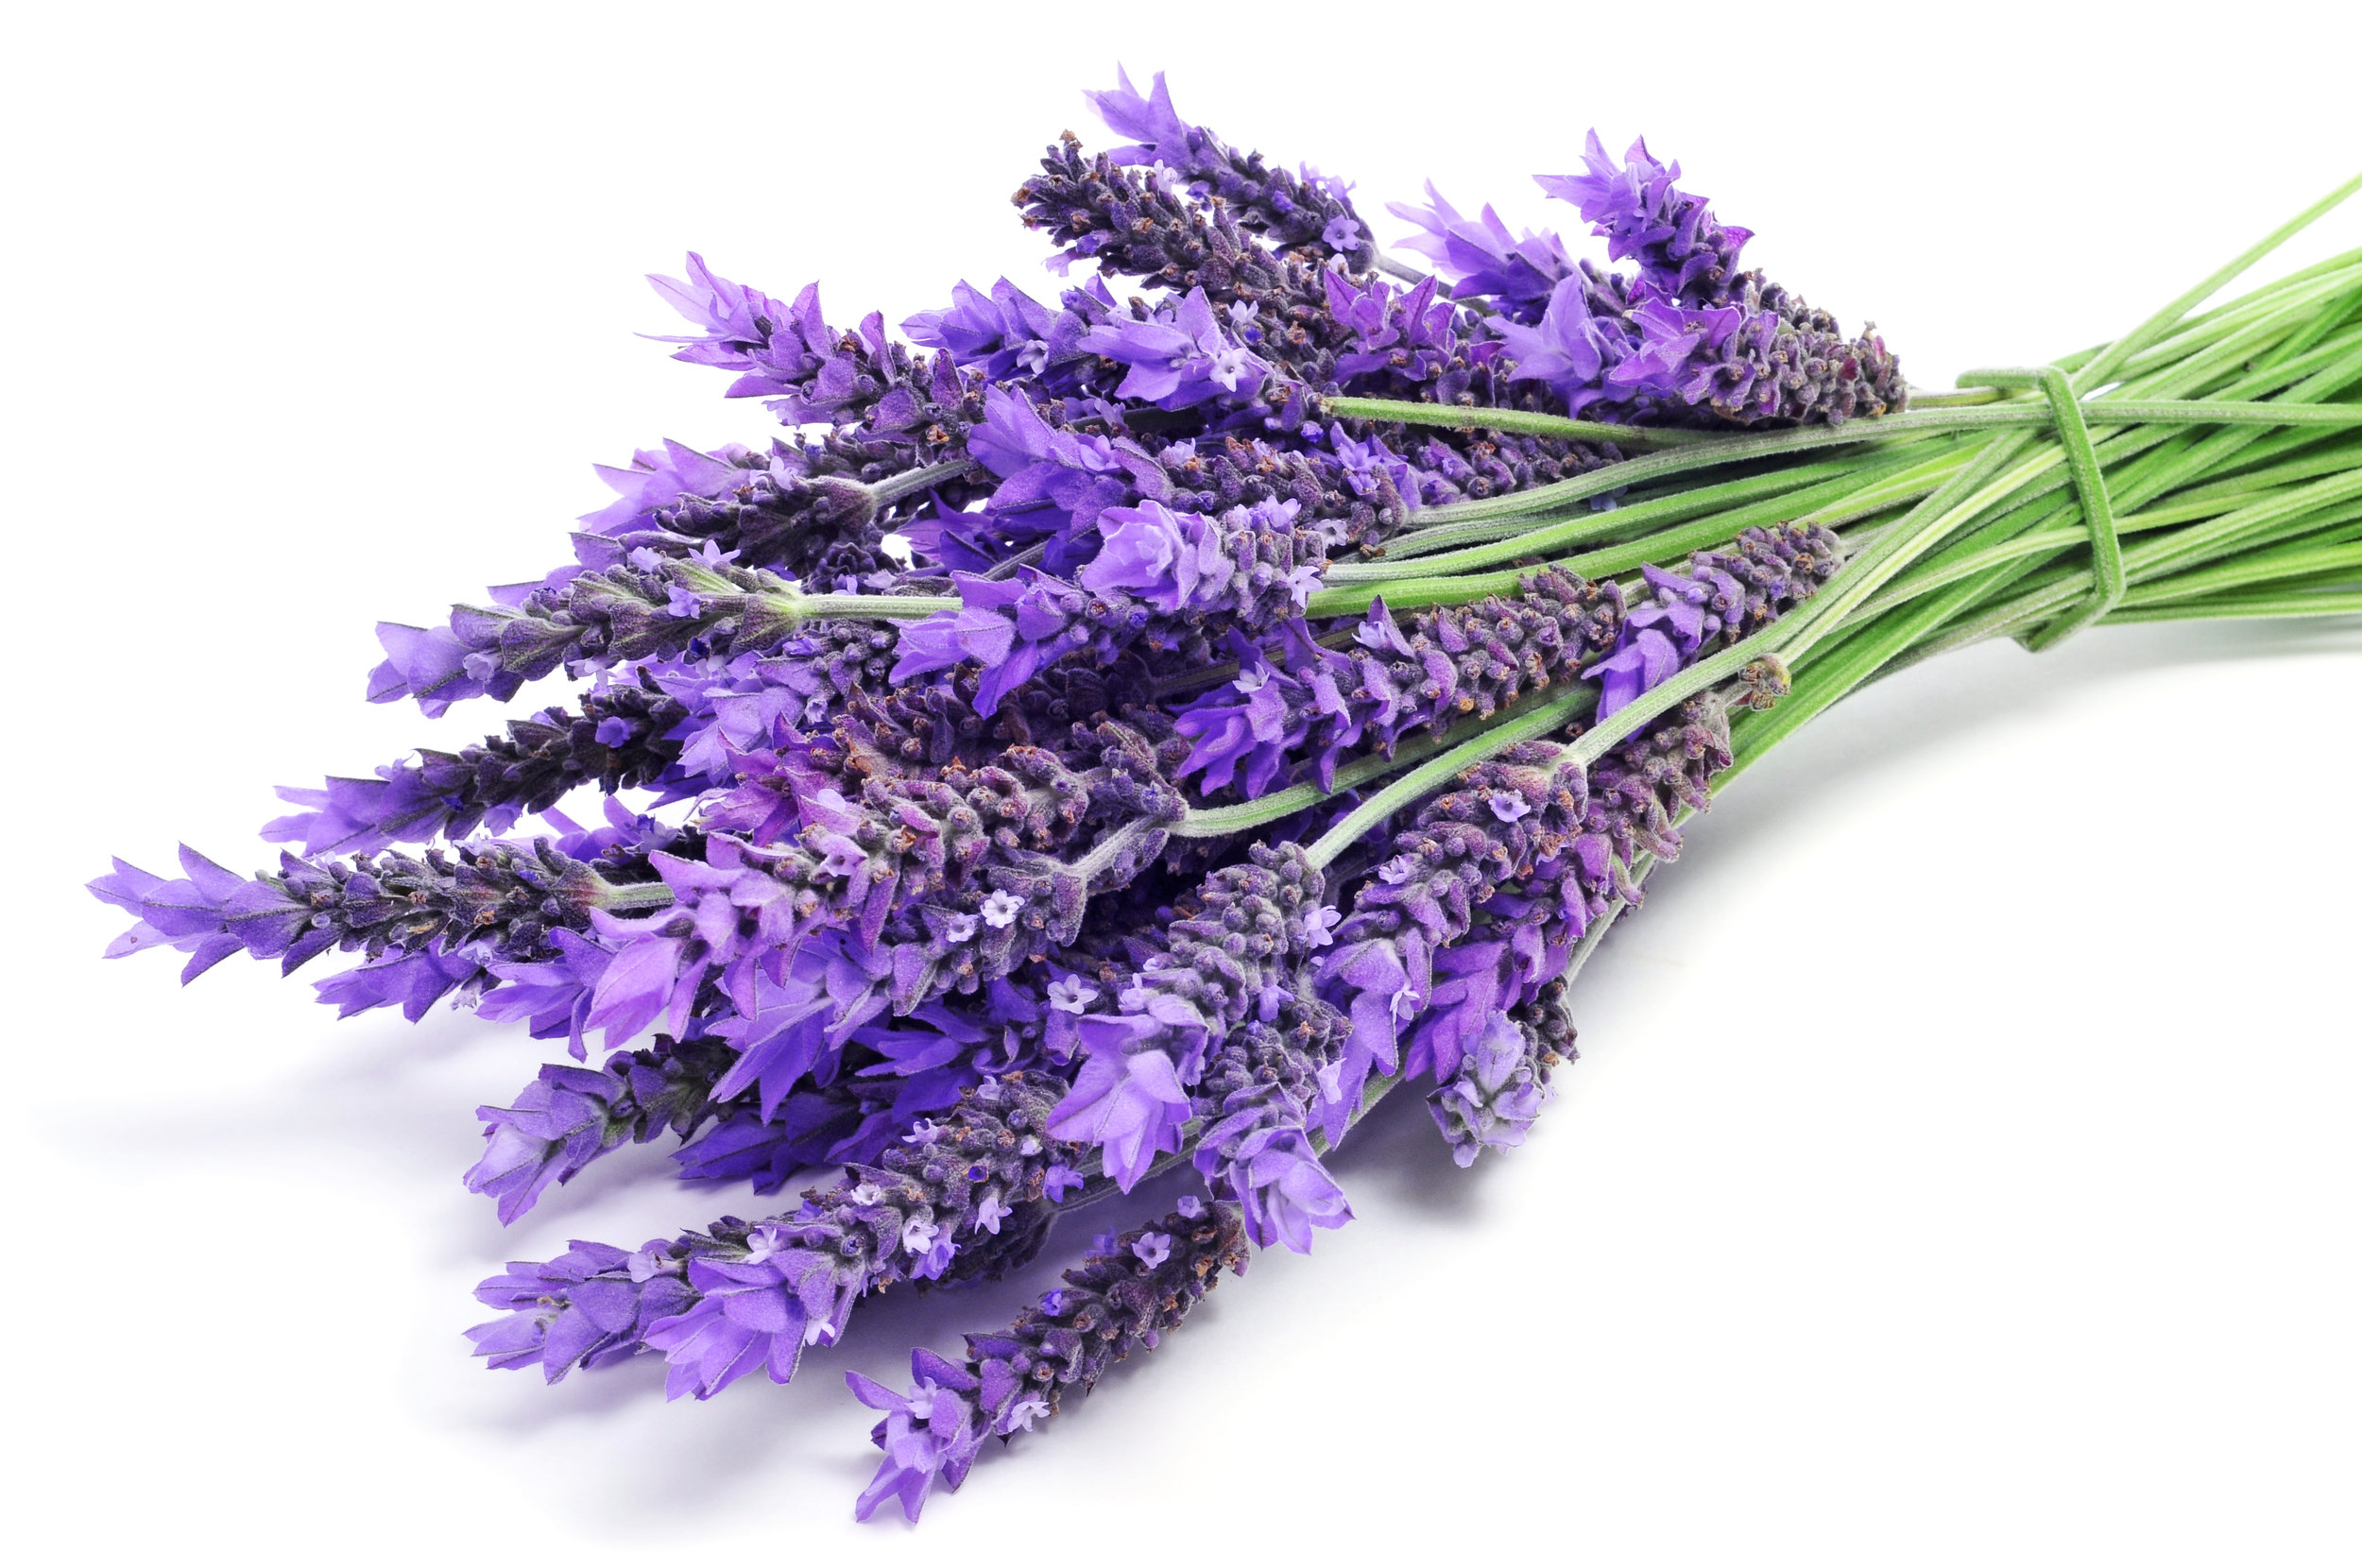 Lavender Stems in Bunch